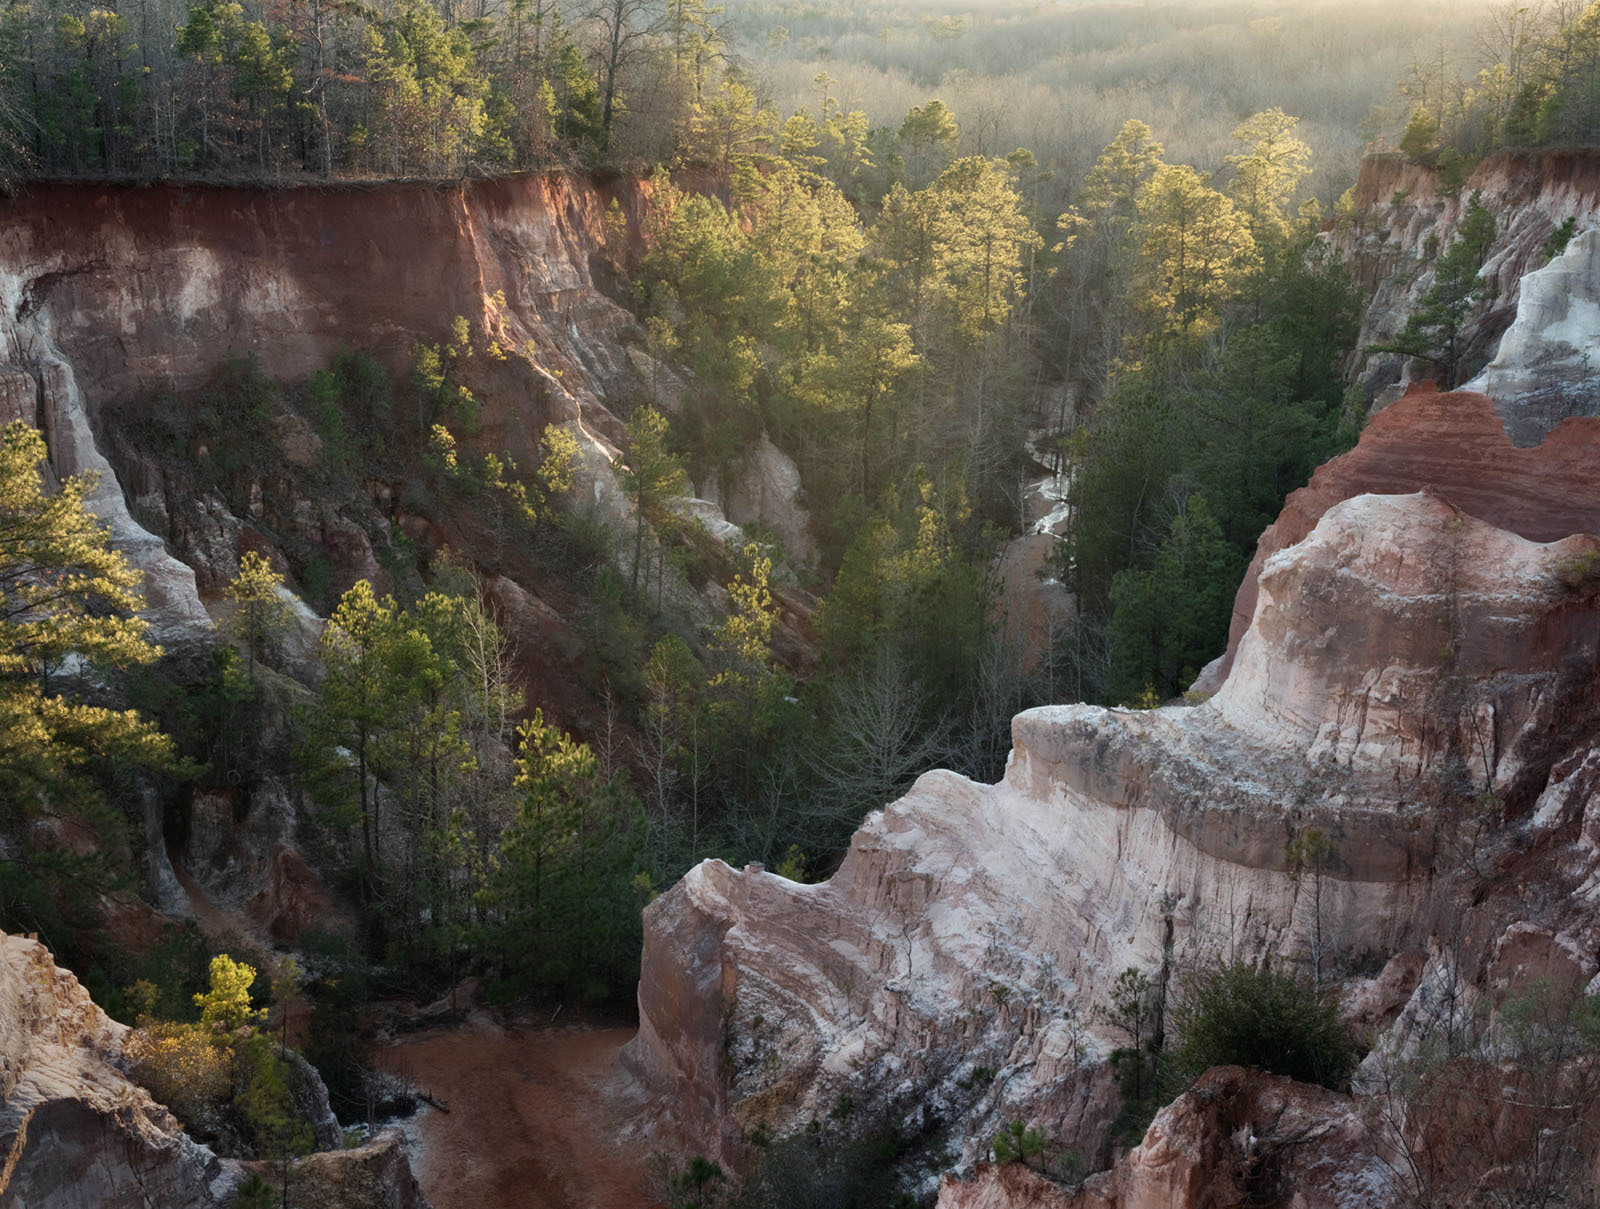 canyon, red rocks, trees